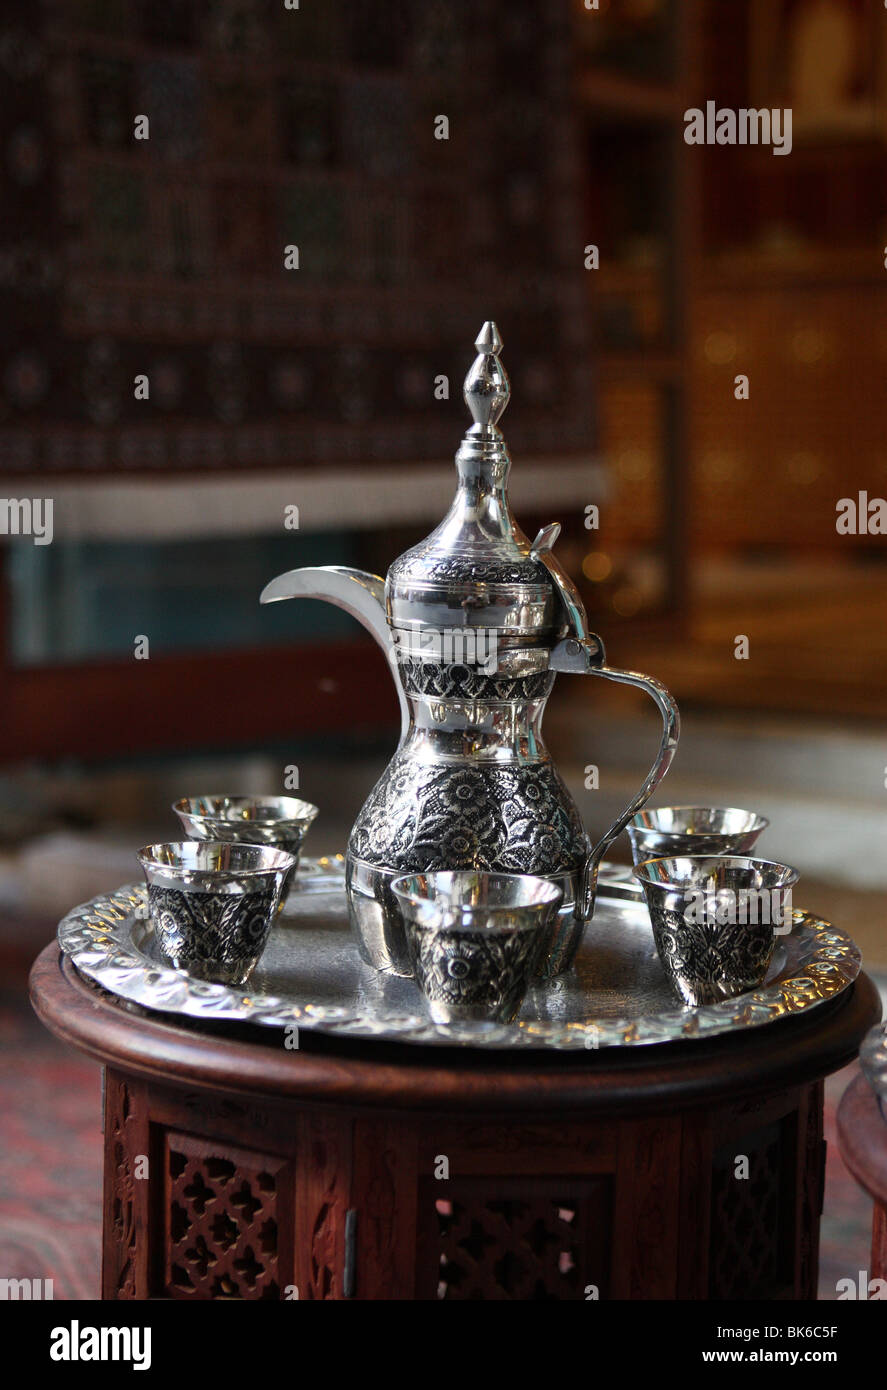 Arabic coffee set in  Souq Waqif,Doha,Qatar - Stock Image